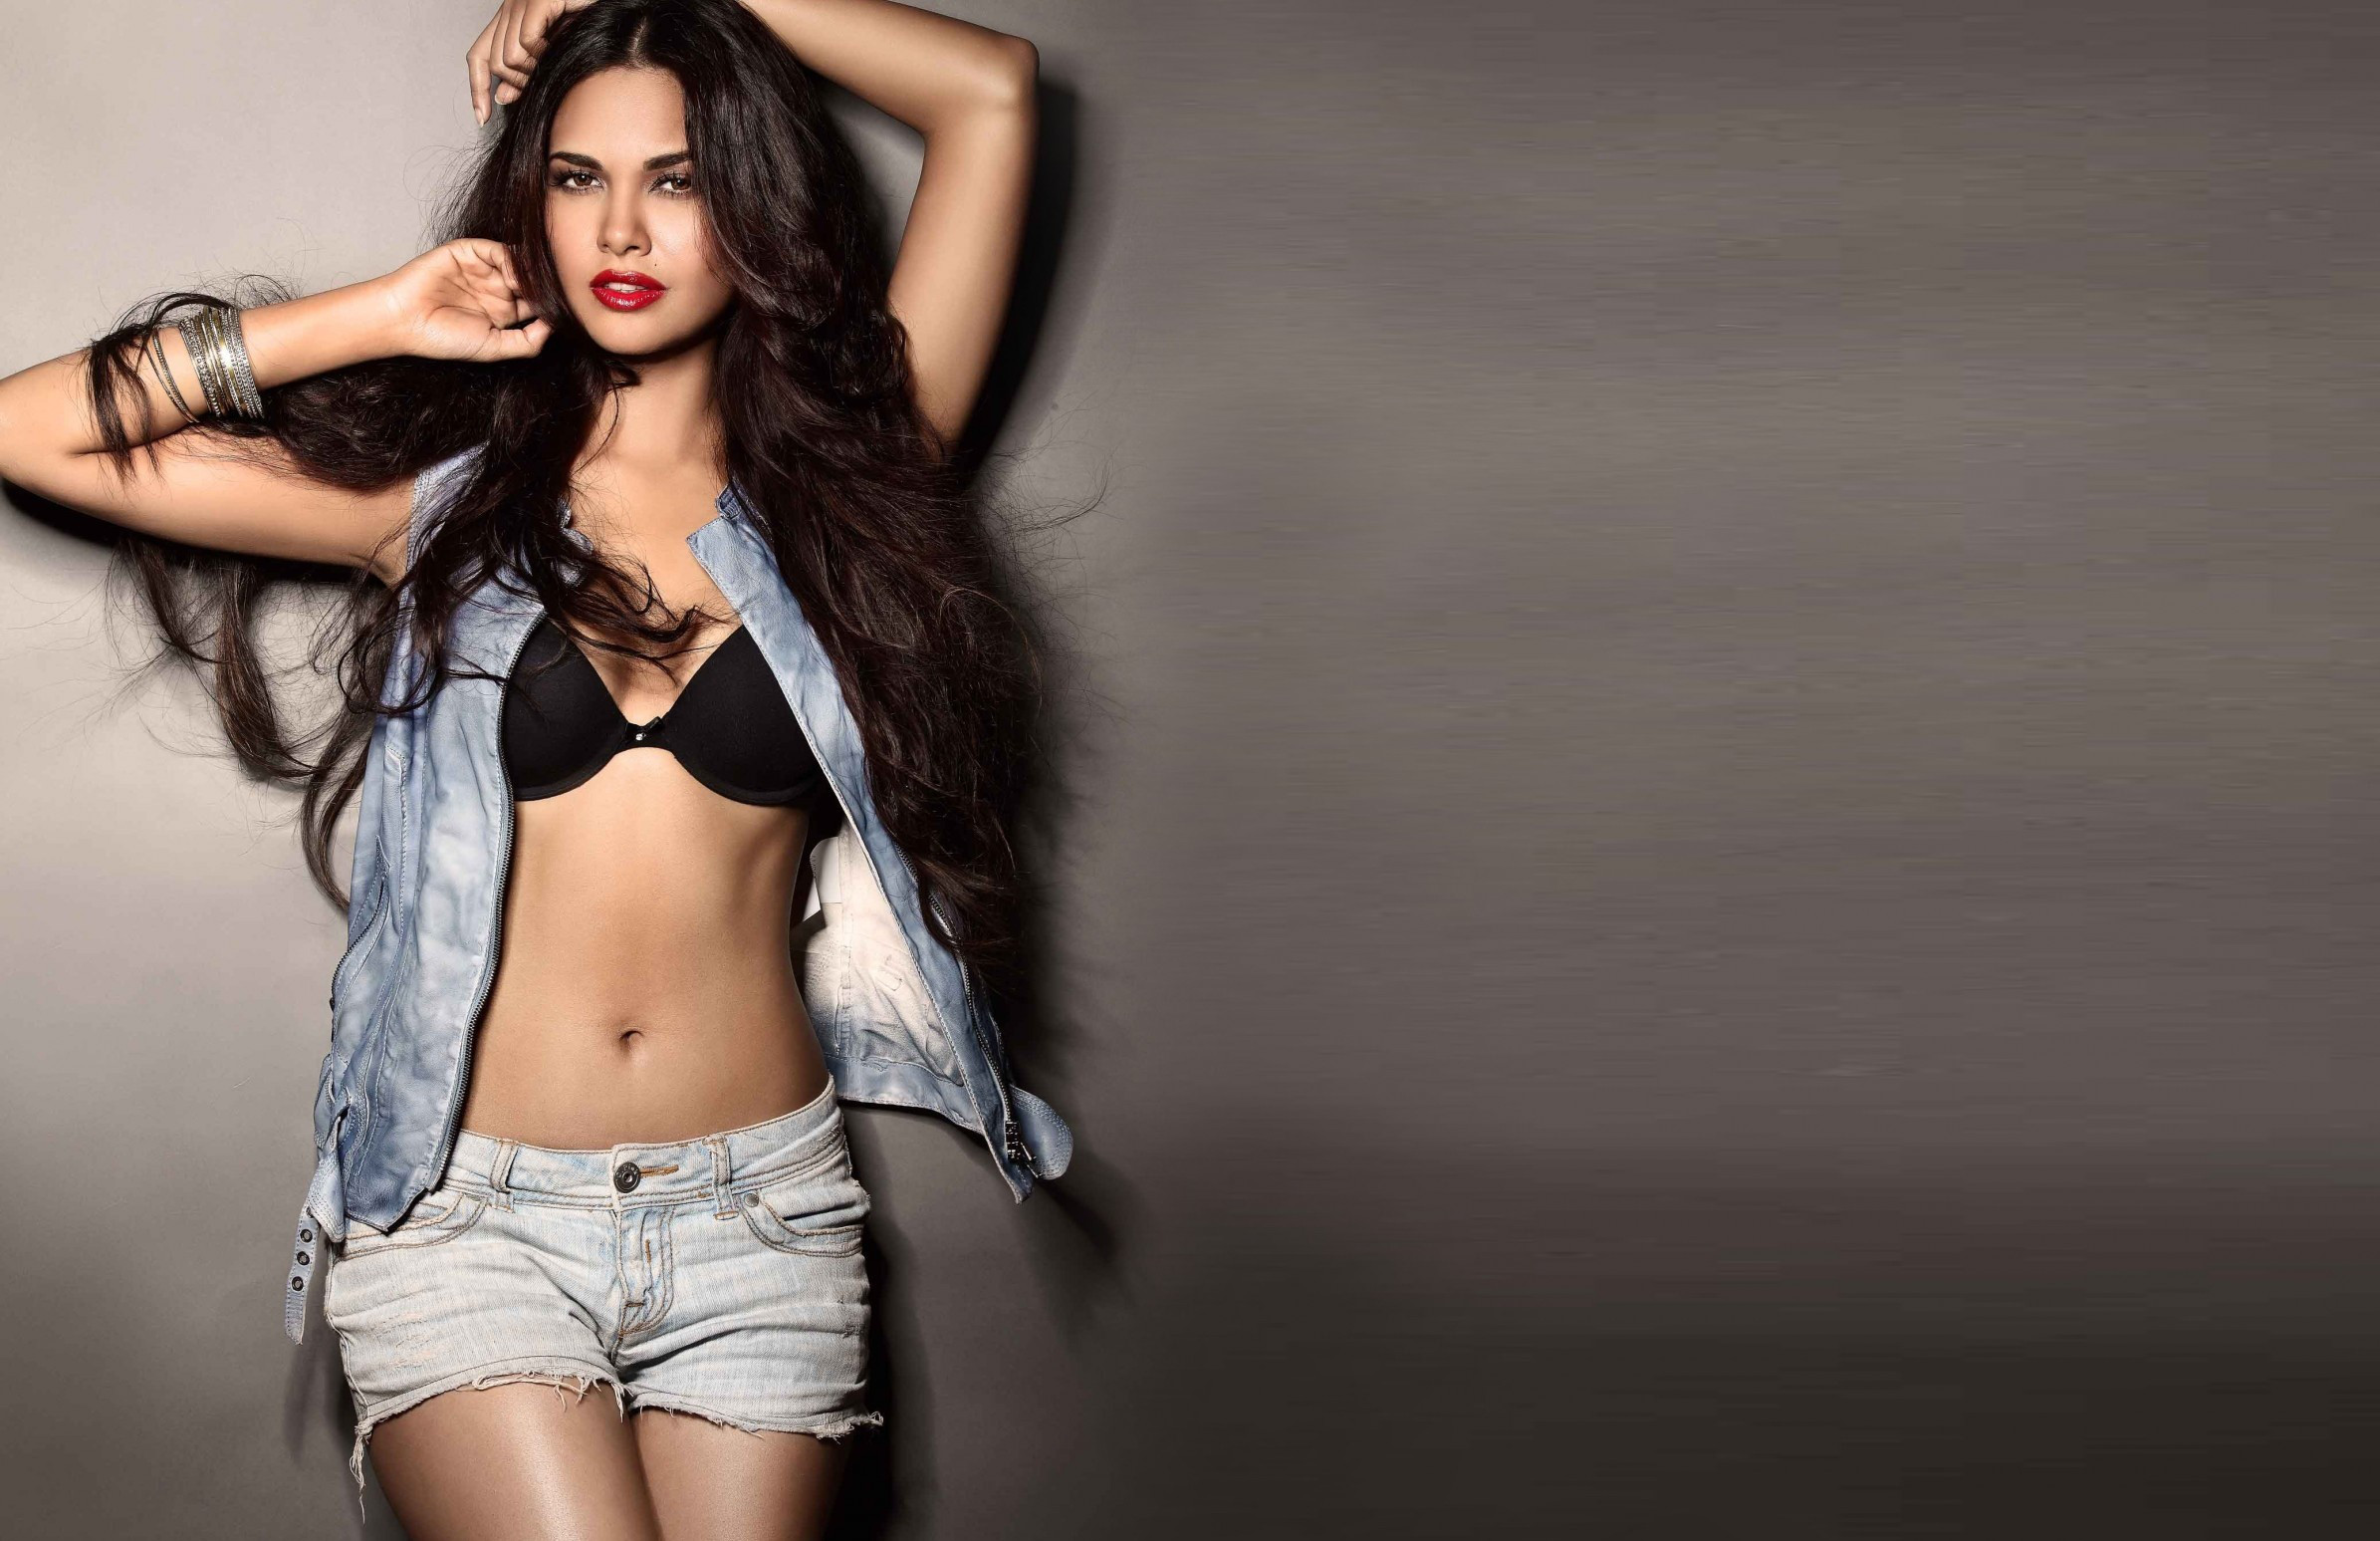 wallpapersden.com_esha-gupta-hot-wallpaper_2880x1800